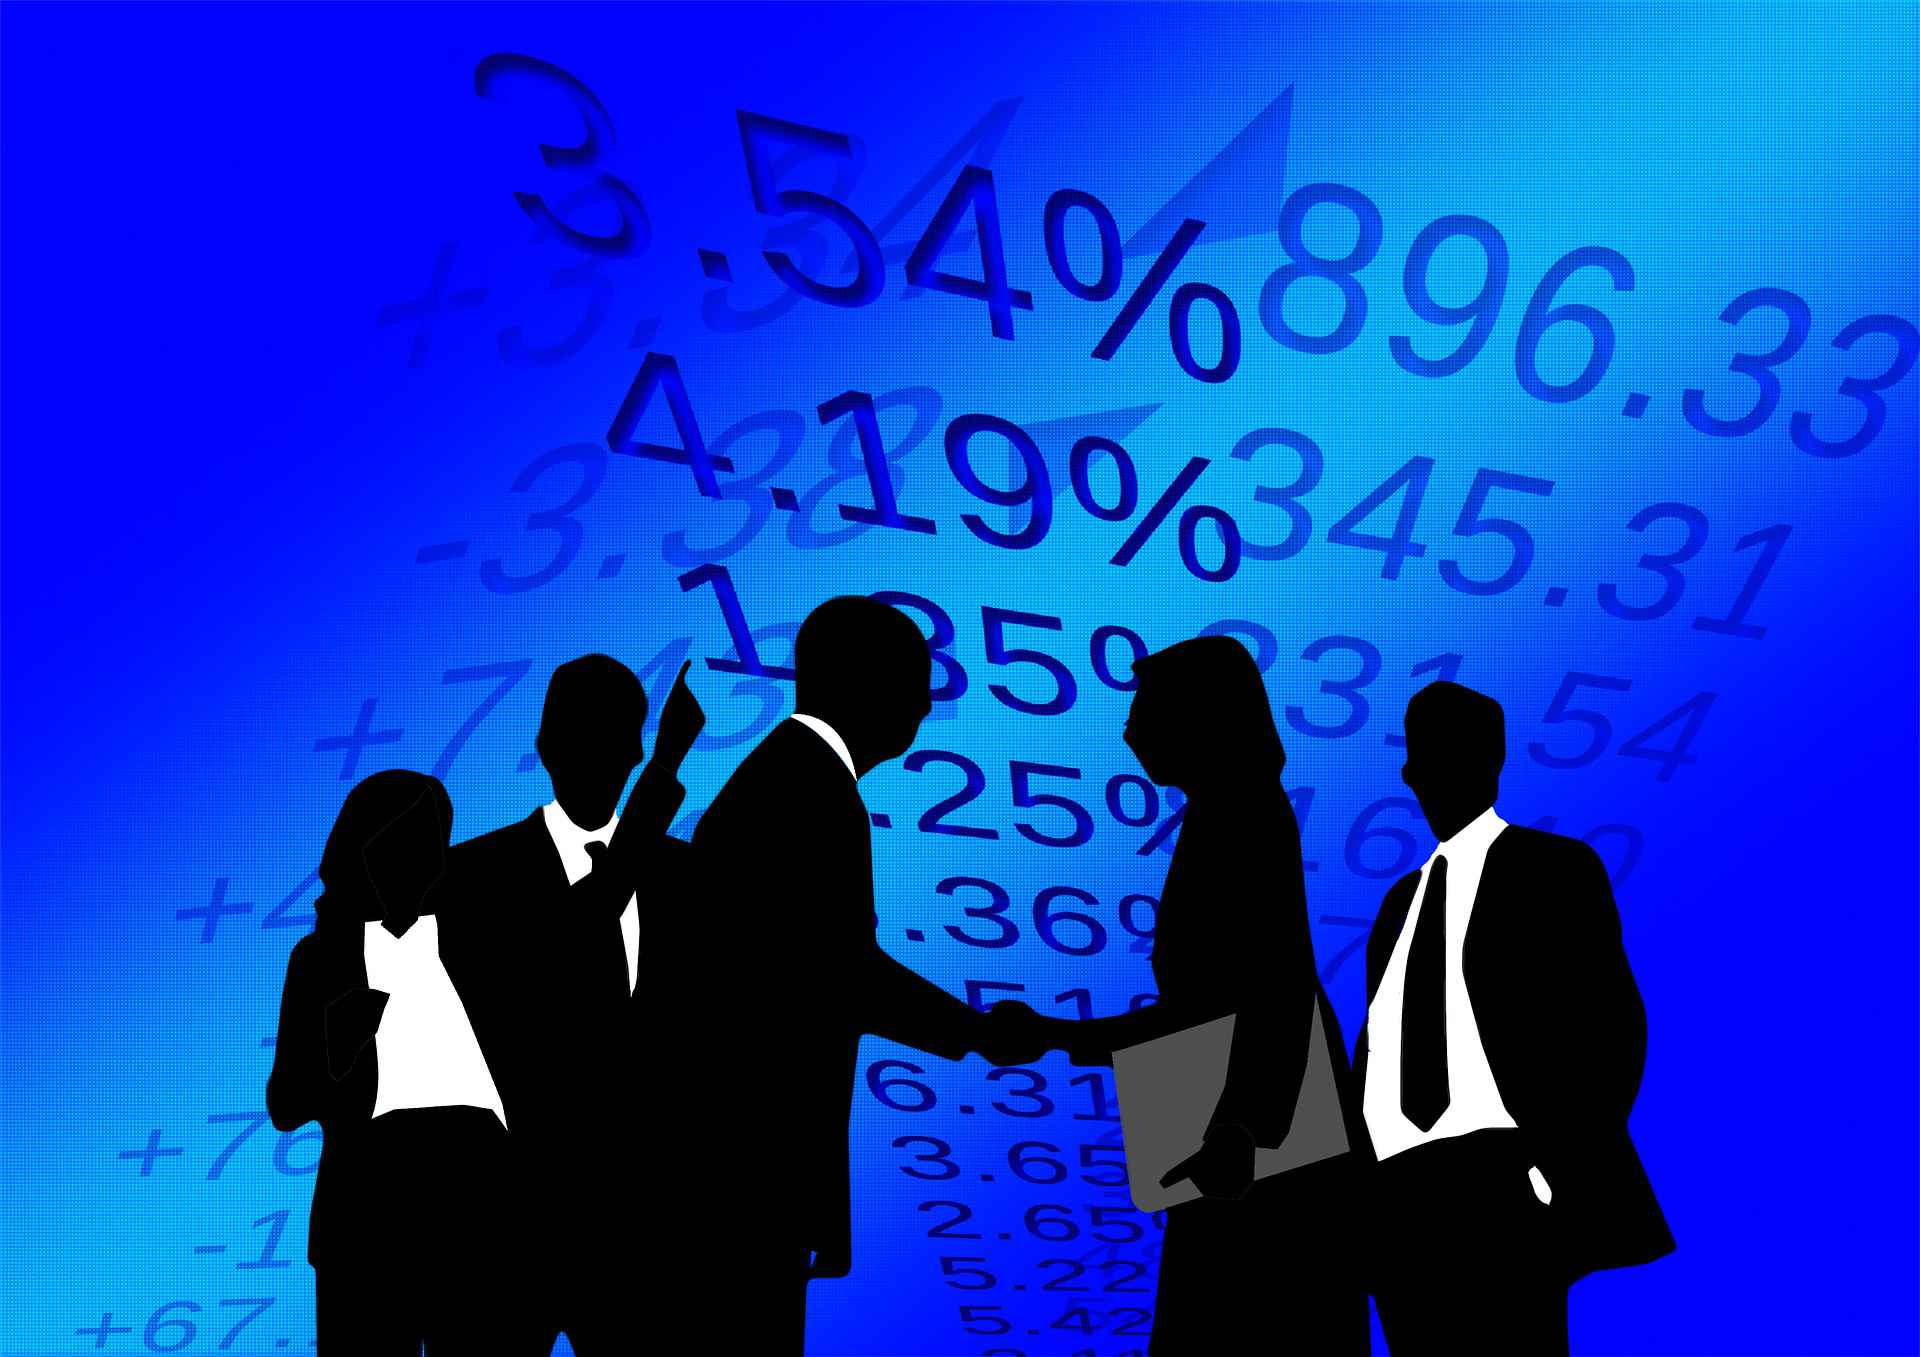 a blue graphic of a group of financial planners wearing suits shaking hands with percentage numbers in the background representing the Certified Financial Planner Requirements